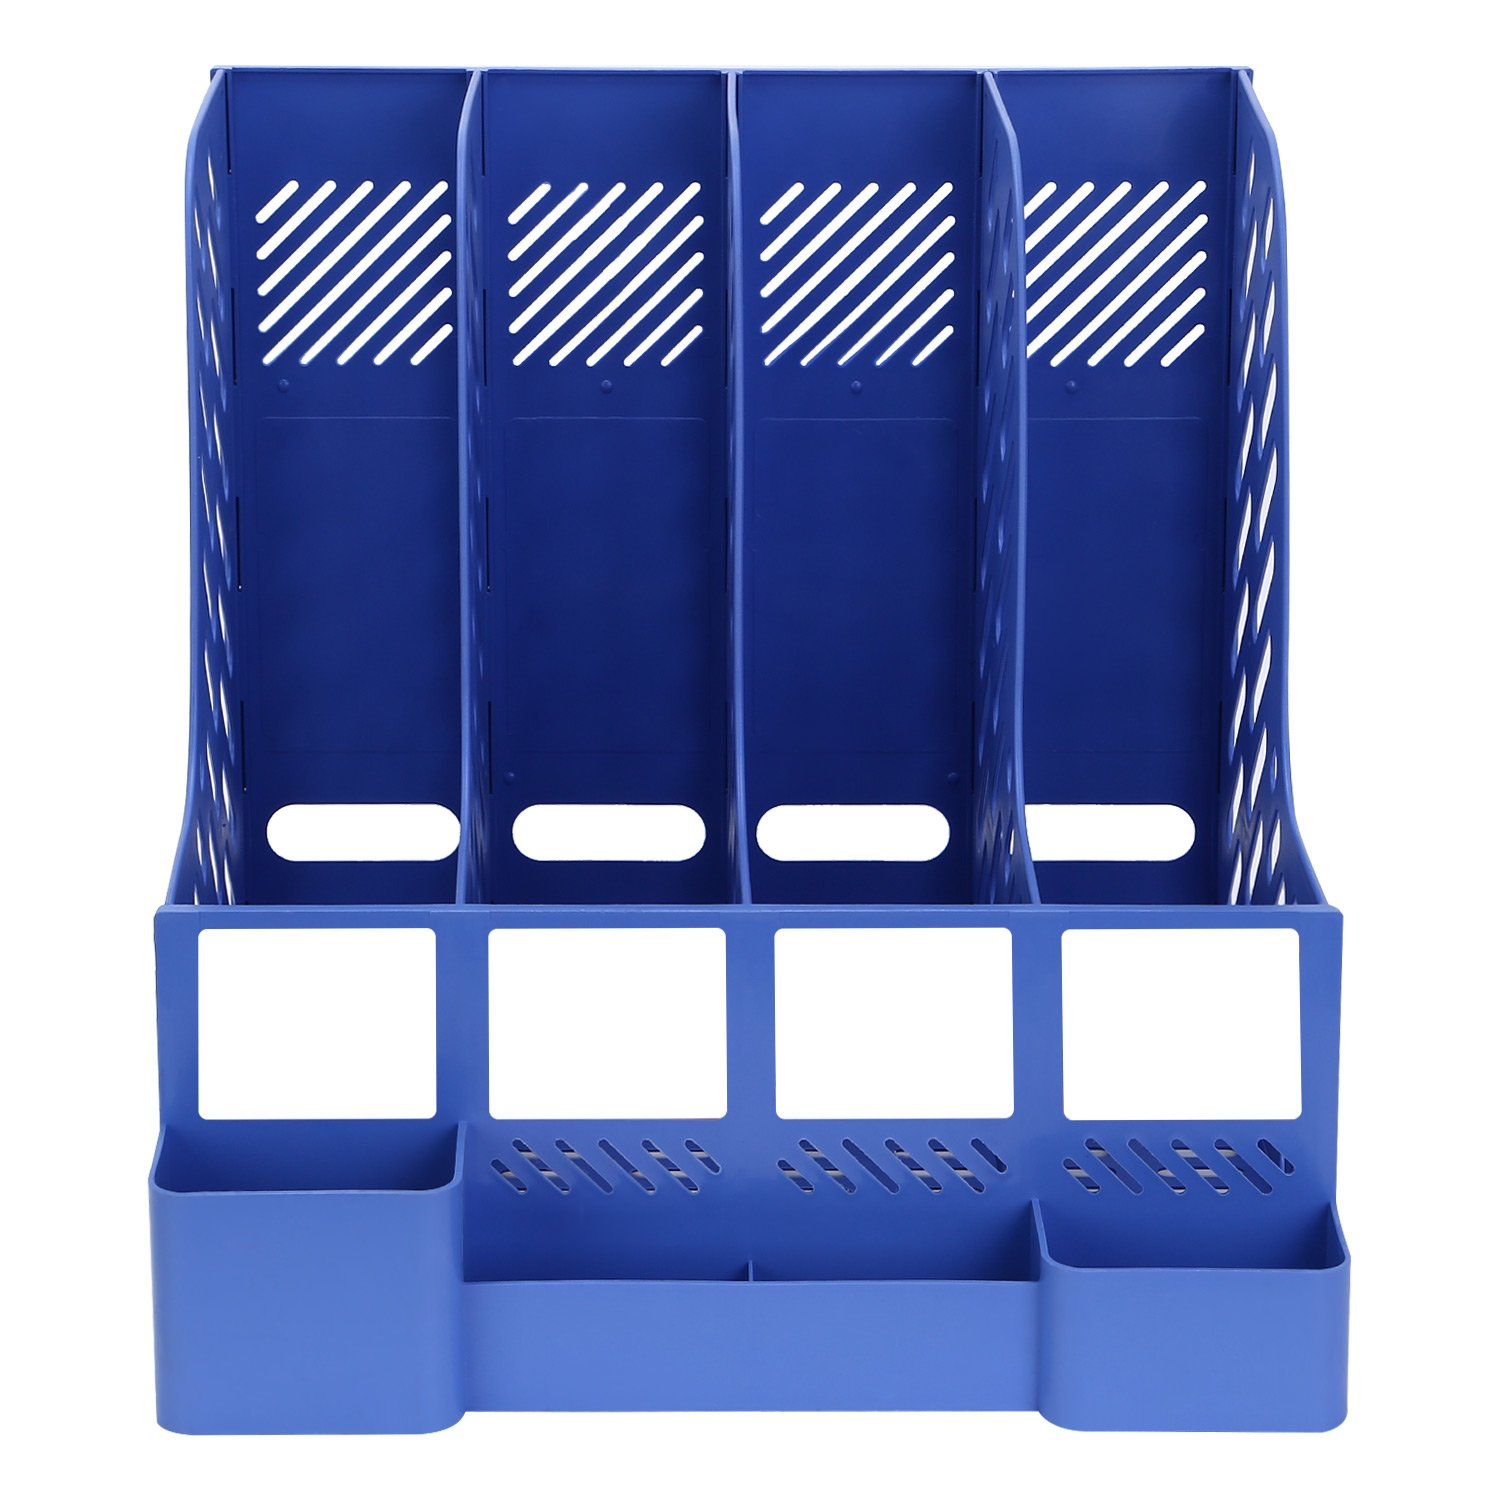 Amazon.com : TOROTON File Rack Holder, 4 Compartments Mesh Plastic Home Office Desk Book Sorter Storage Shelf, for Paper Magazine Documents and Books -Blue ...